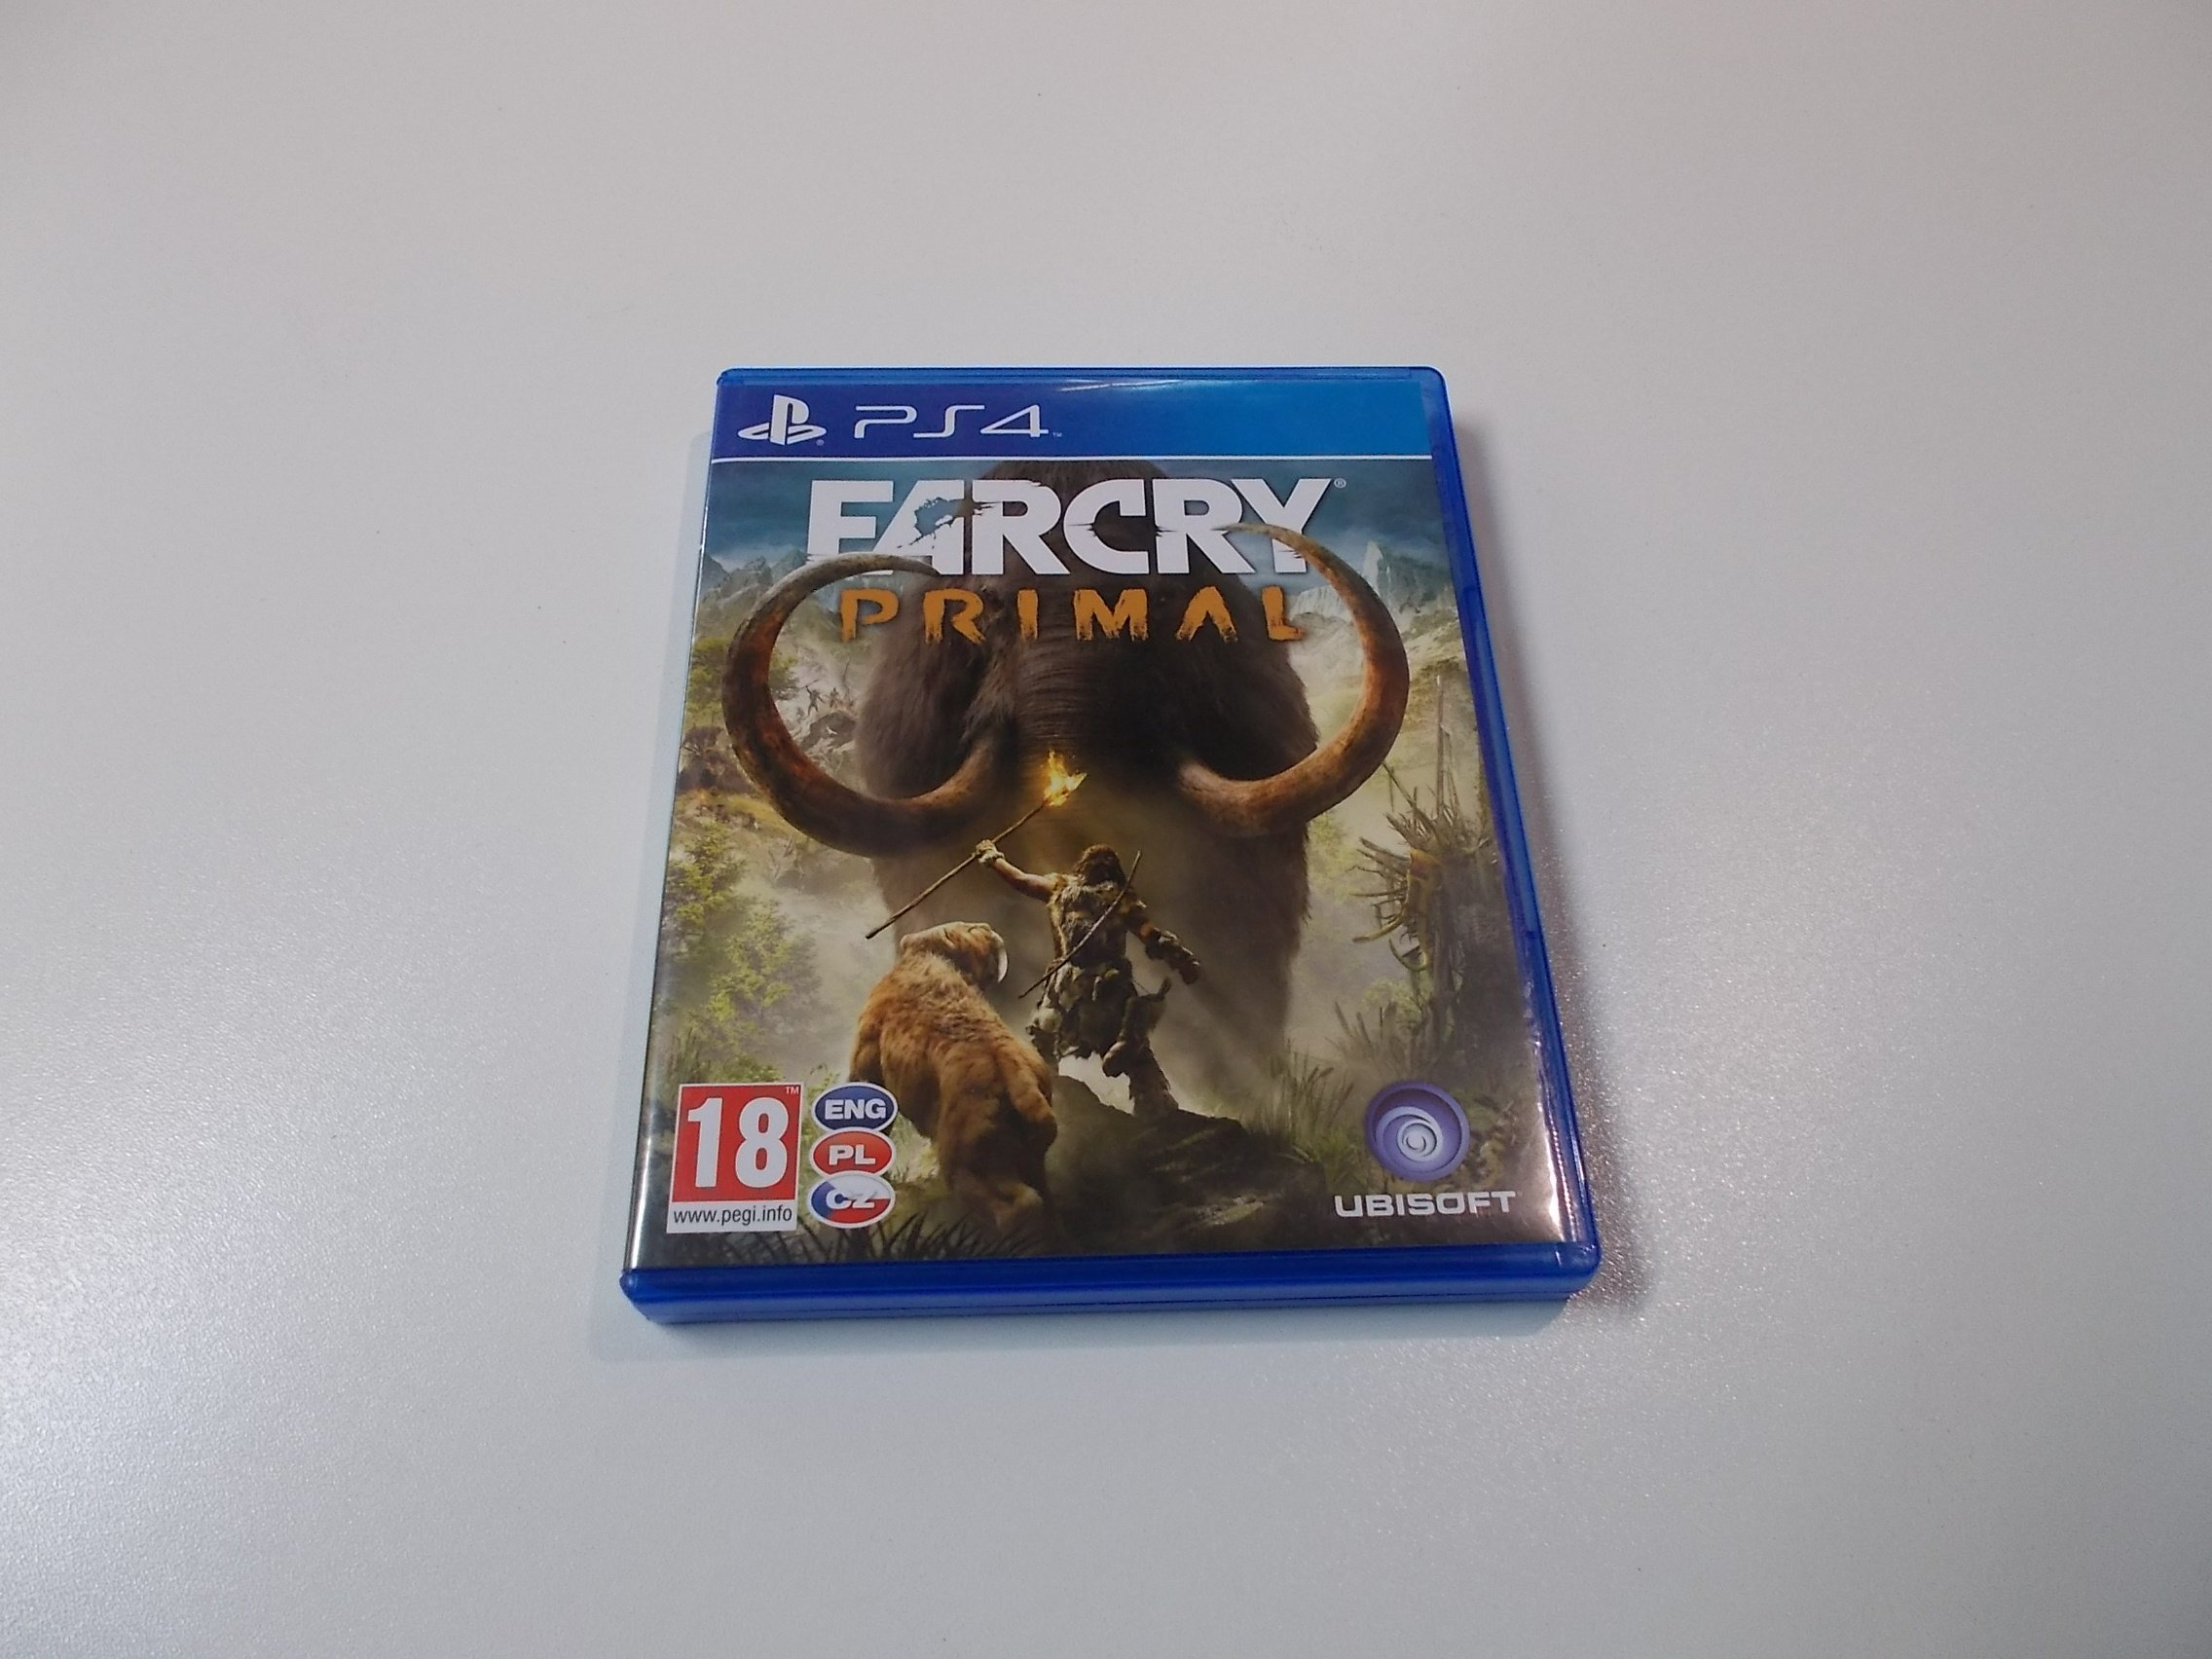 Farcry Primal Far Cry Primal - GRA Ps4 - Opole 0428